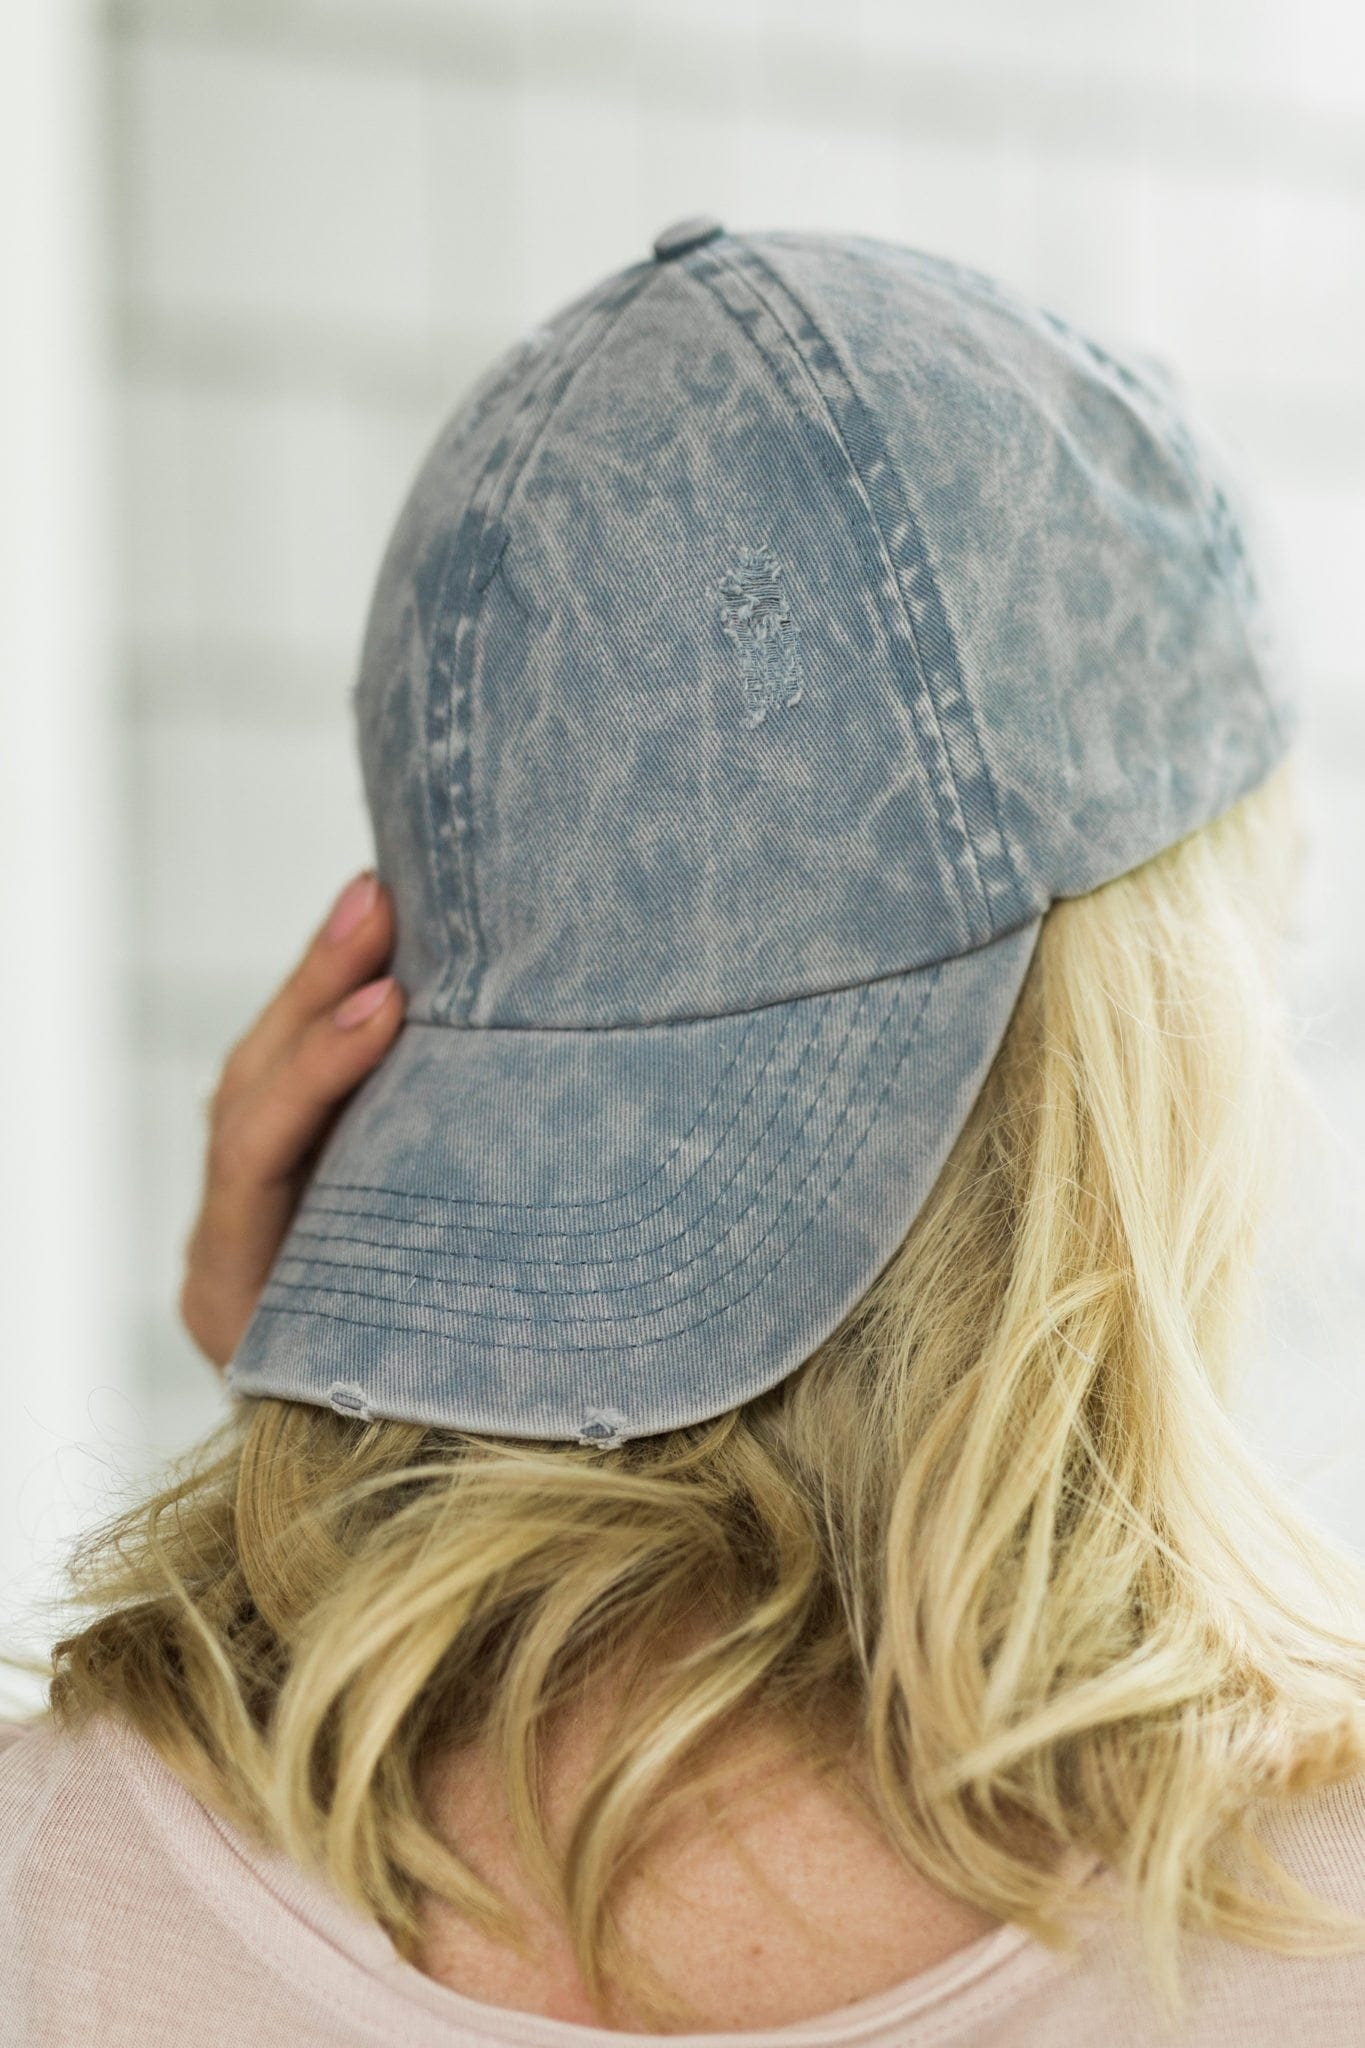 Women blue baseball hat. Distressed denim looks great with every outfit. It's a pale blue color hat with just enough distressing to still look polished but effortless. I love to wear my blue baseball cap with pigtails for an easy everyday hair look.